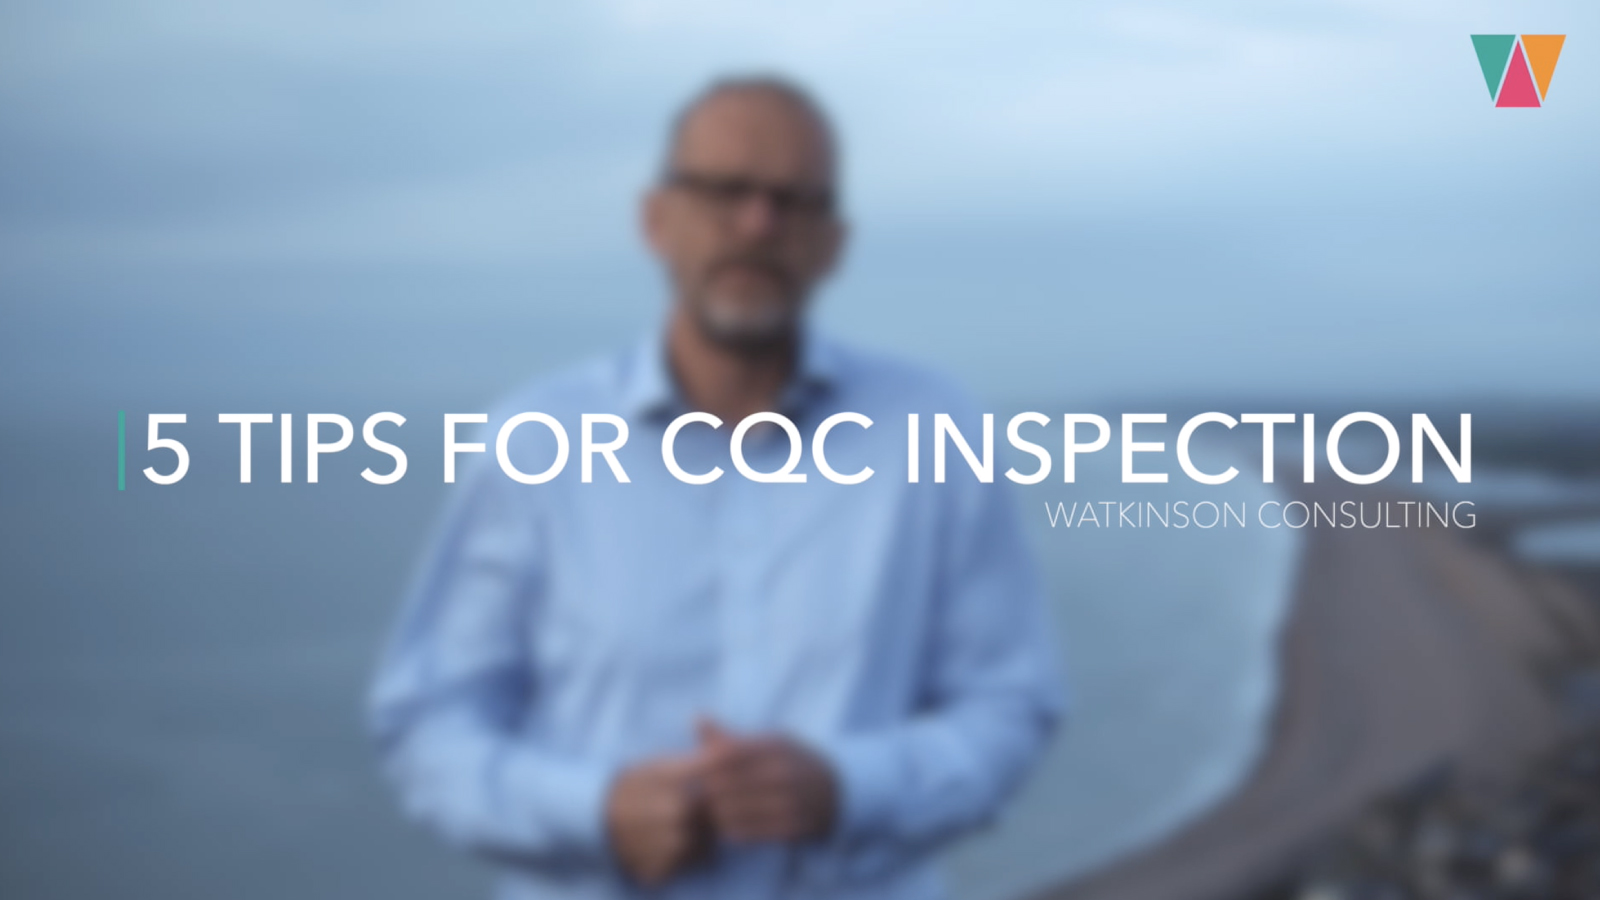 How to change your CQC inspection from a 'threat' to an 'opportunity'